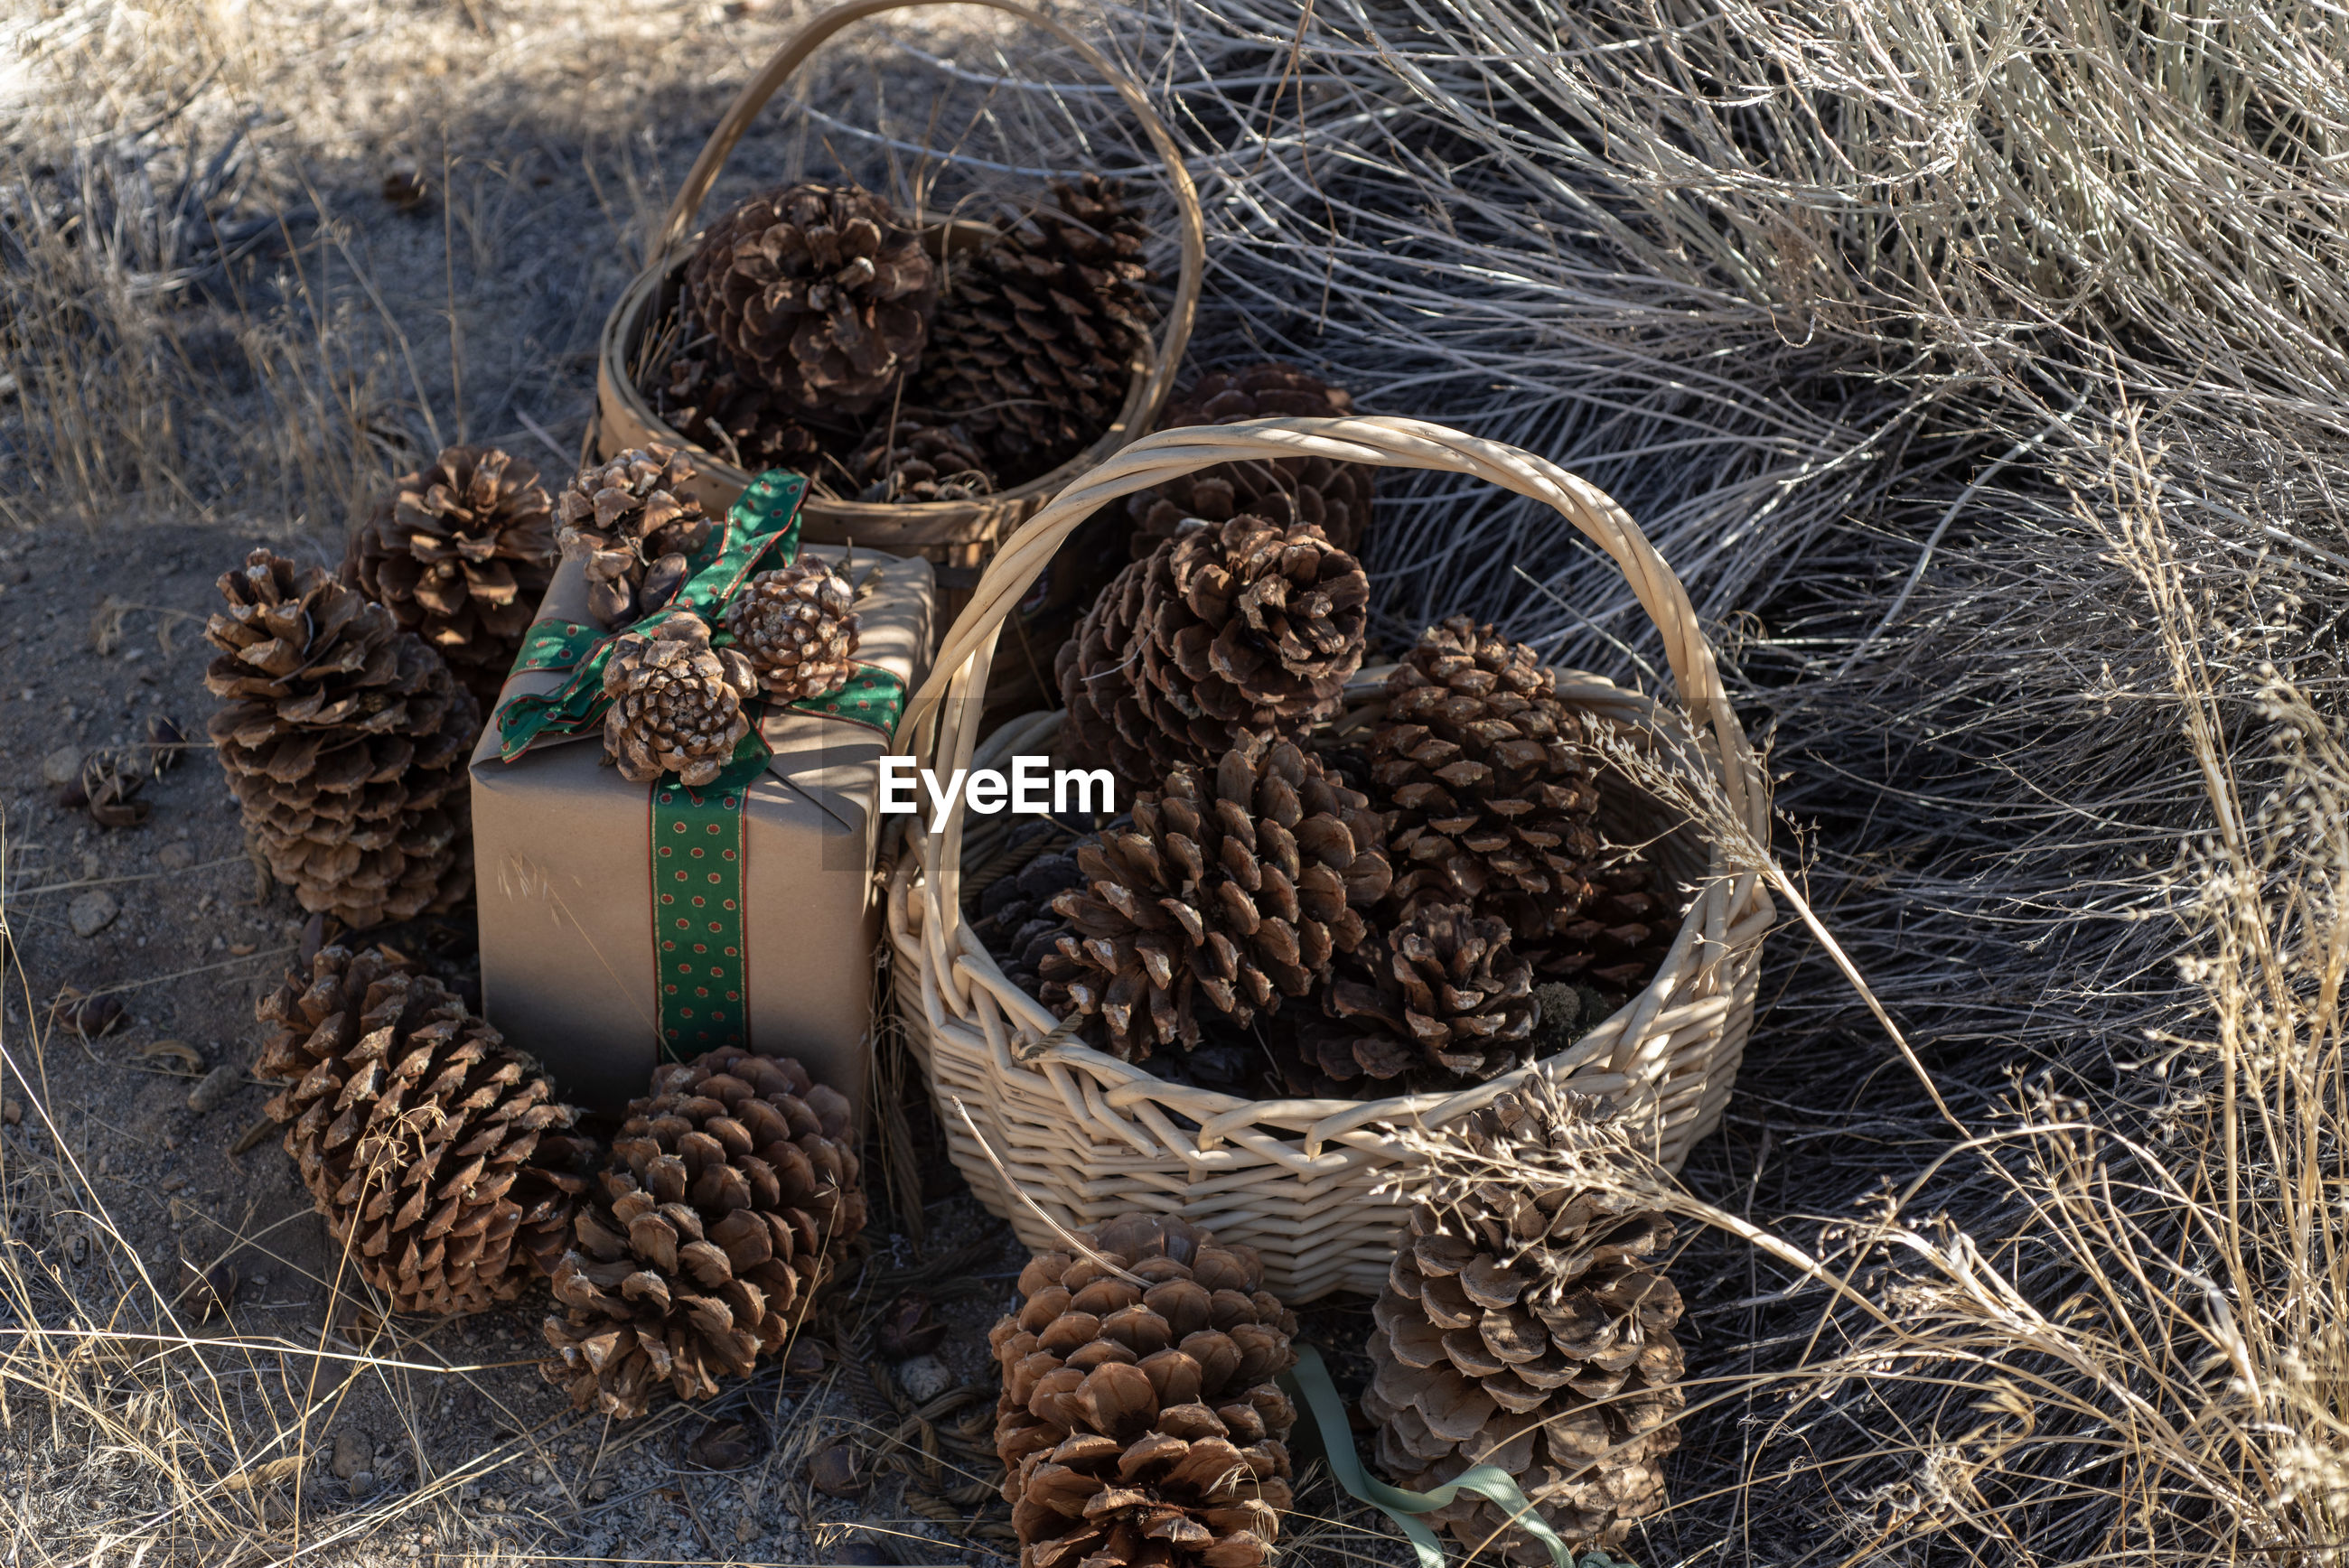 Rustic christmas gifts wrapped in brown paper with green vintage ribbon and pine cone decorations